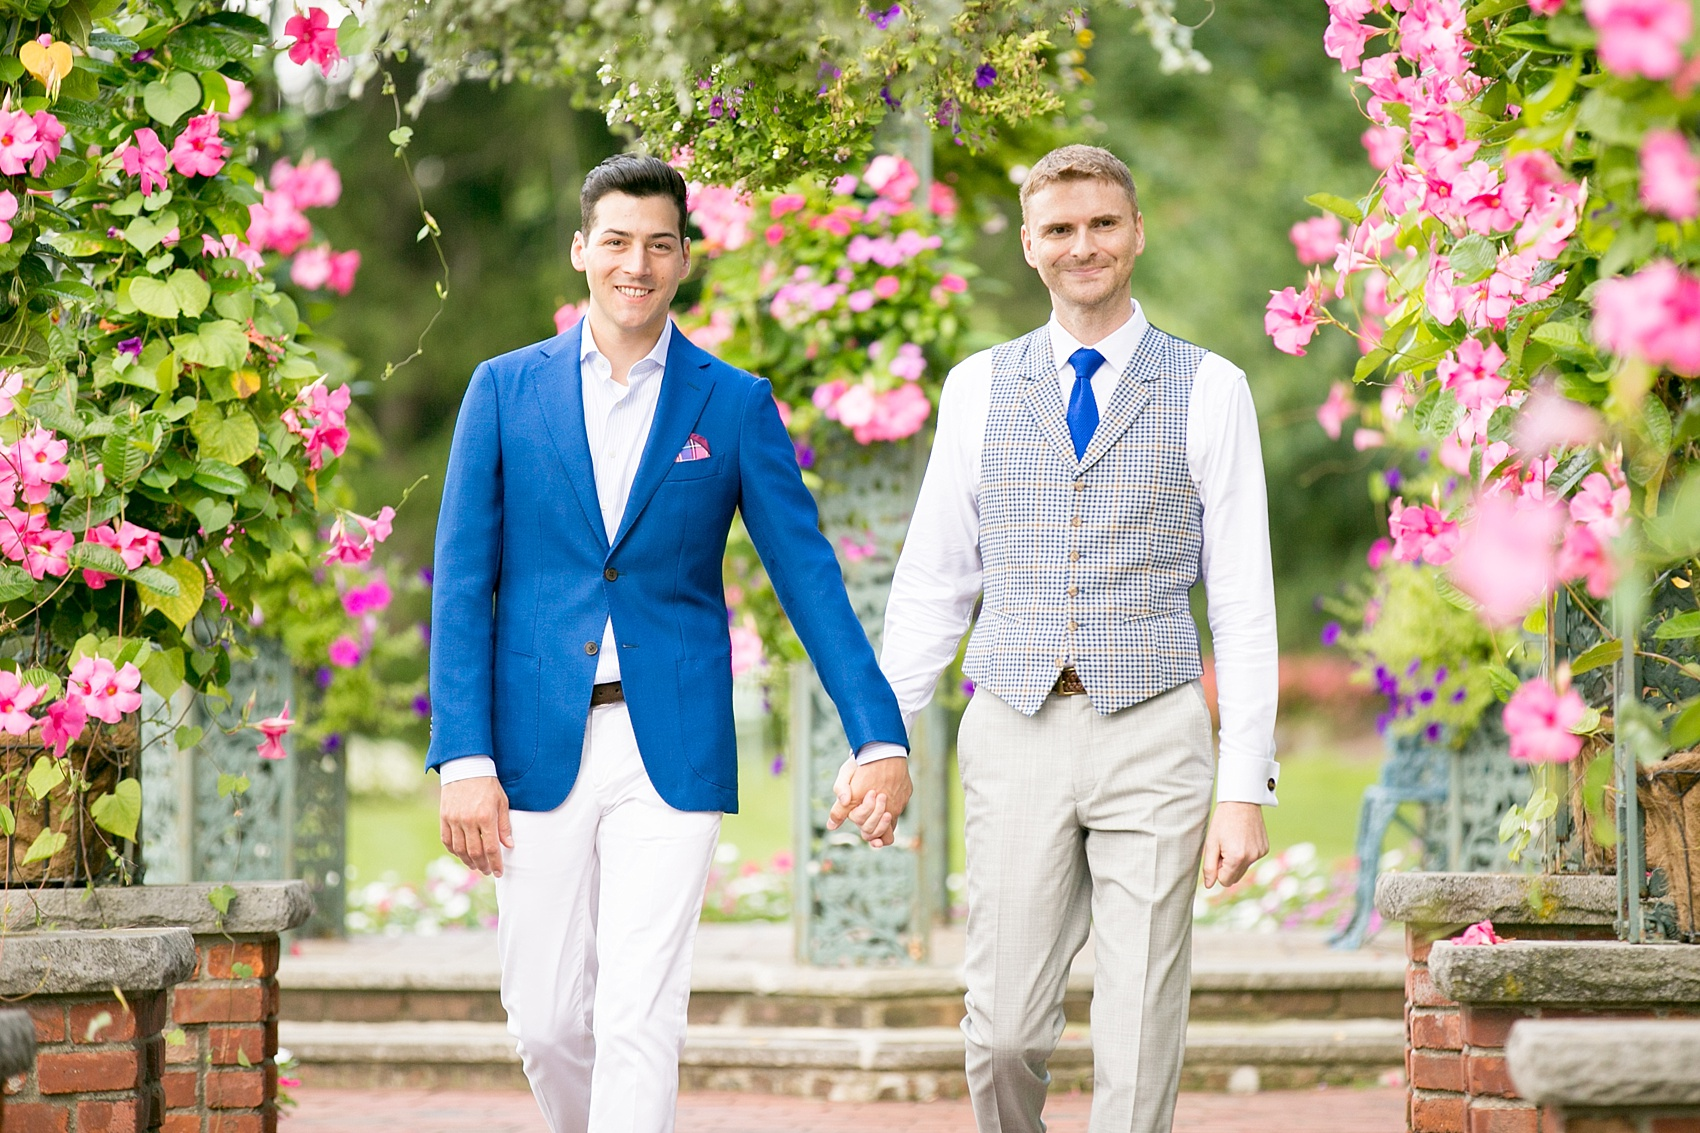 Mikkel Paige Photography photos of a gay wedding at The Manor in West Orange, NJ. The grooms walk to their outdoor summer ceremony on a rose petal carpet under live arches and greenery.